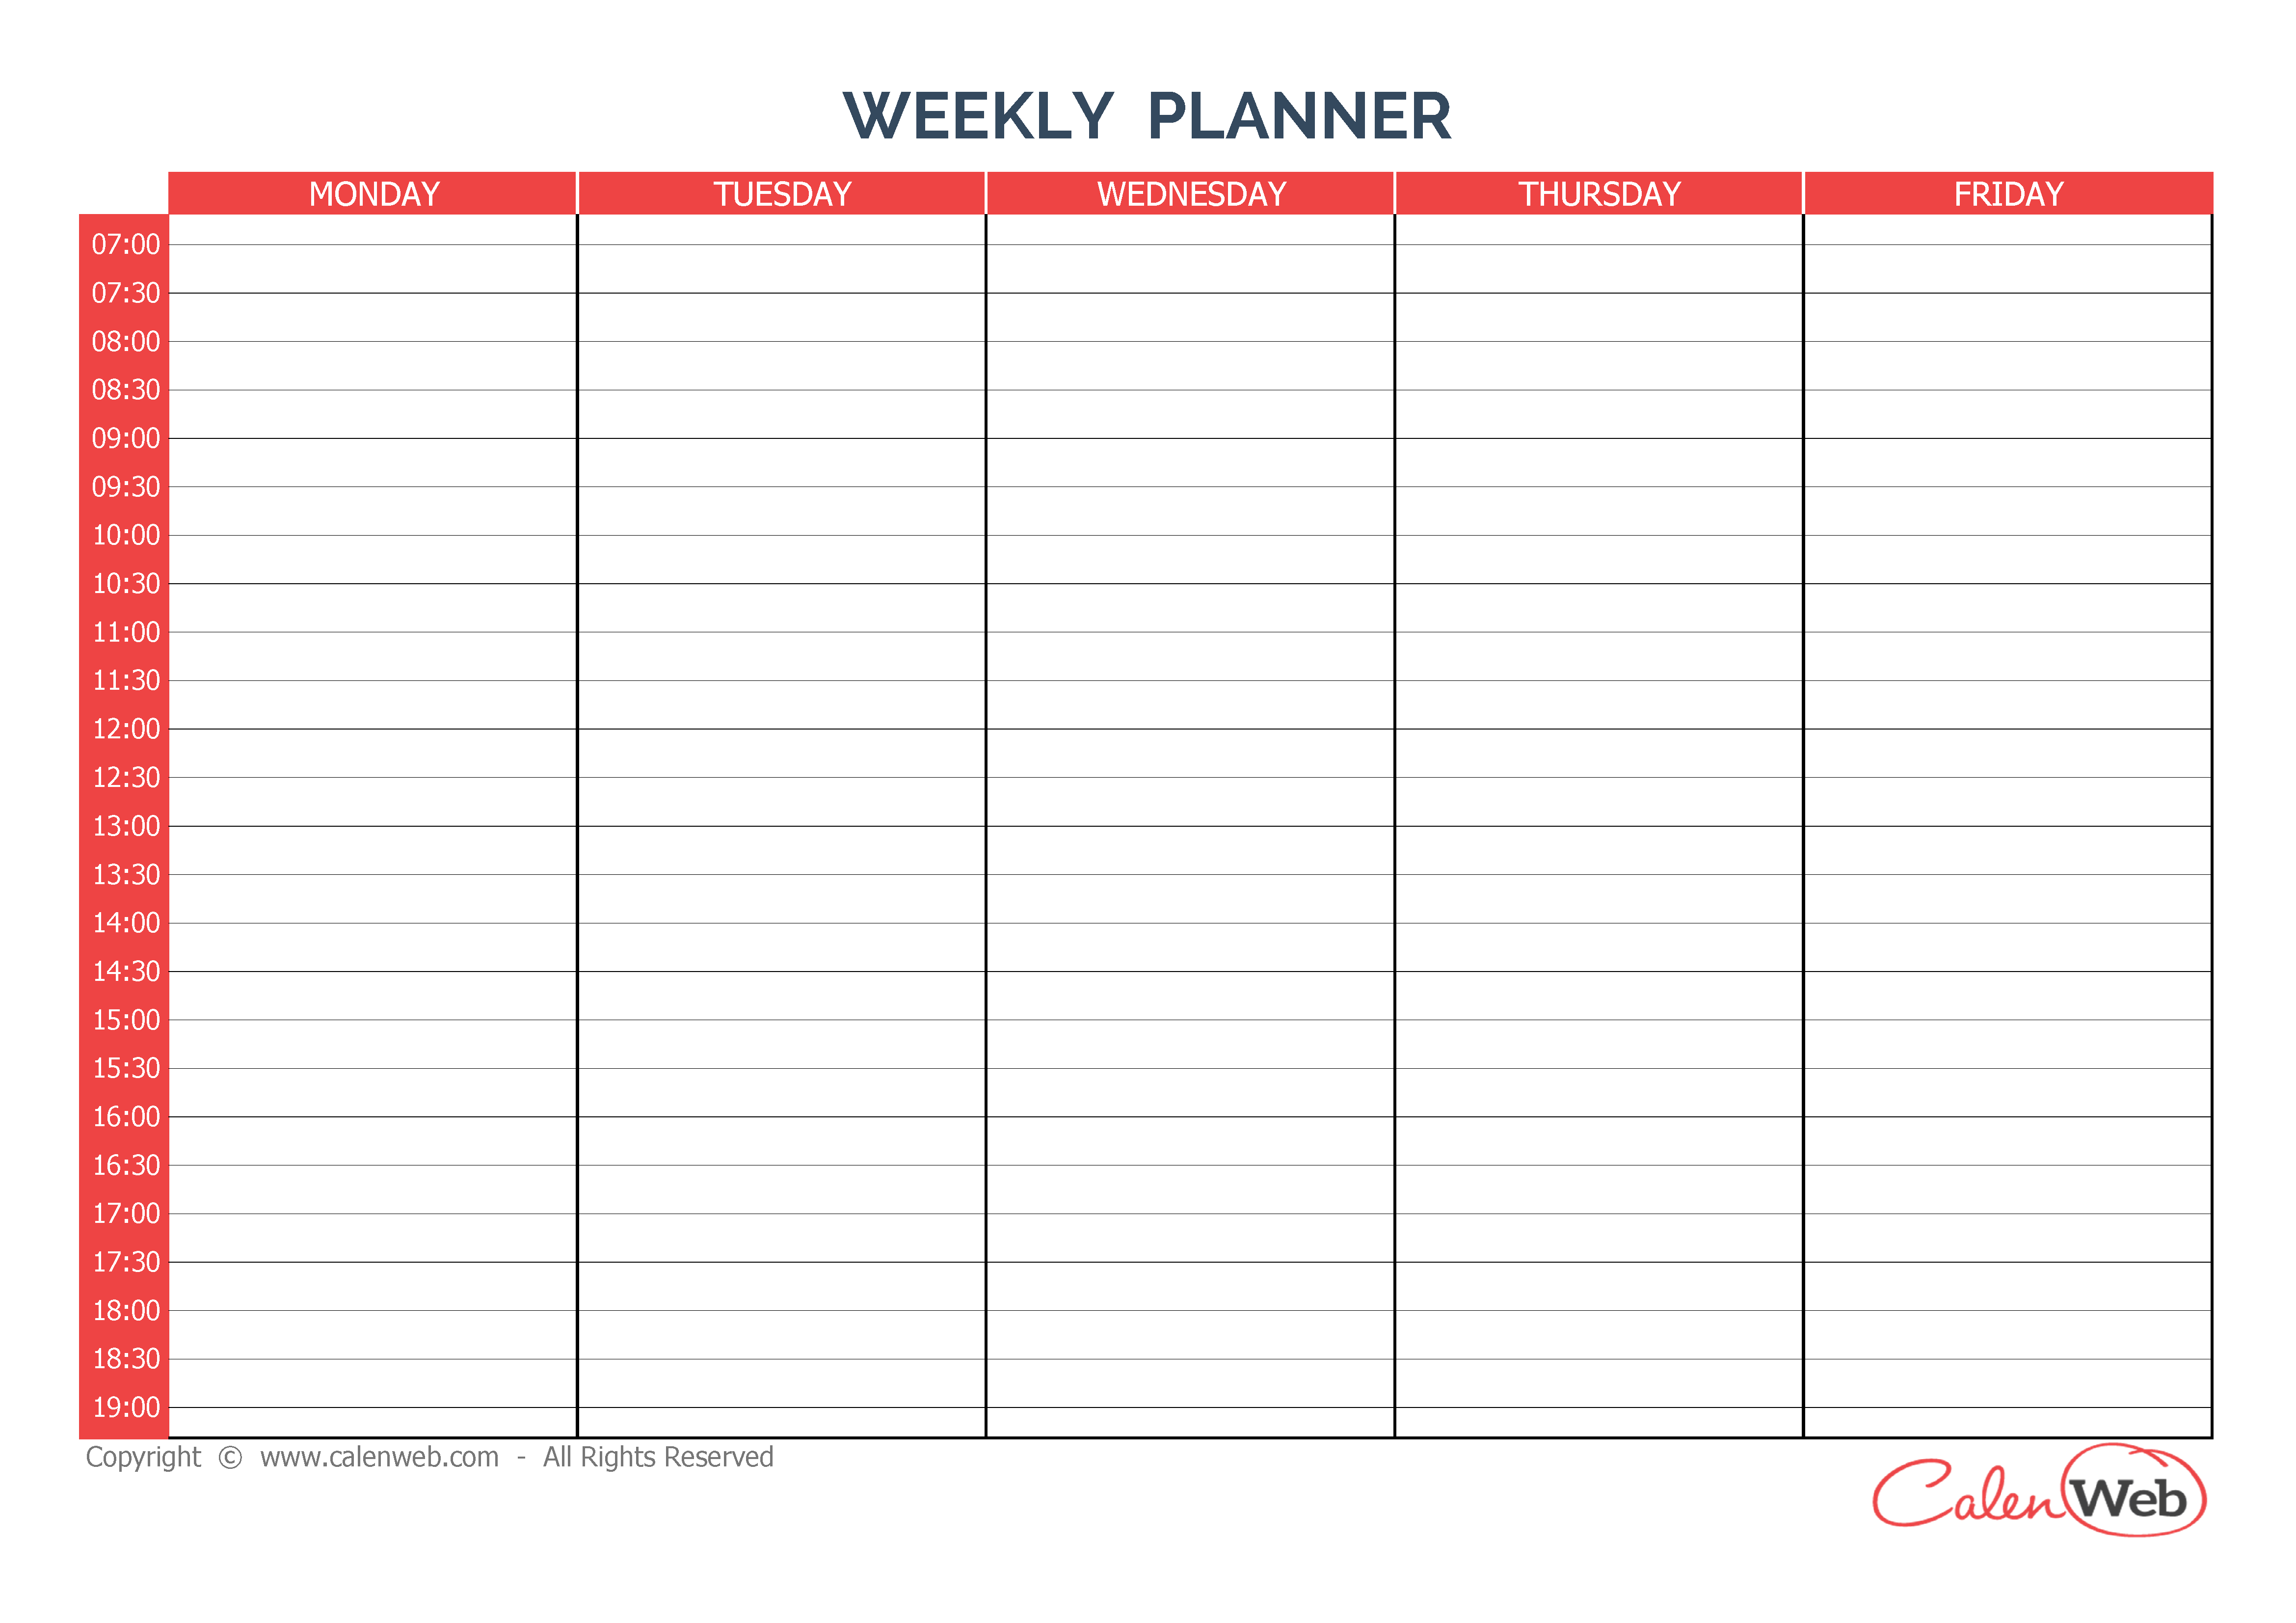 Weekly Planner 5 Days A Week Of 5 Days  Calenweb throughout Monday To Friday Planner Template